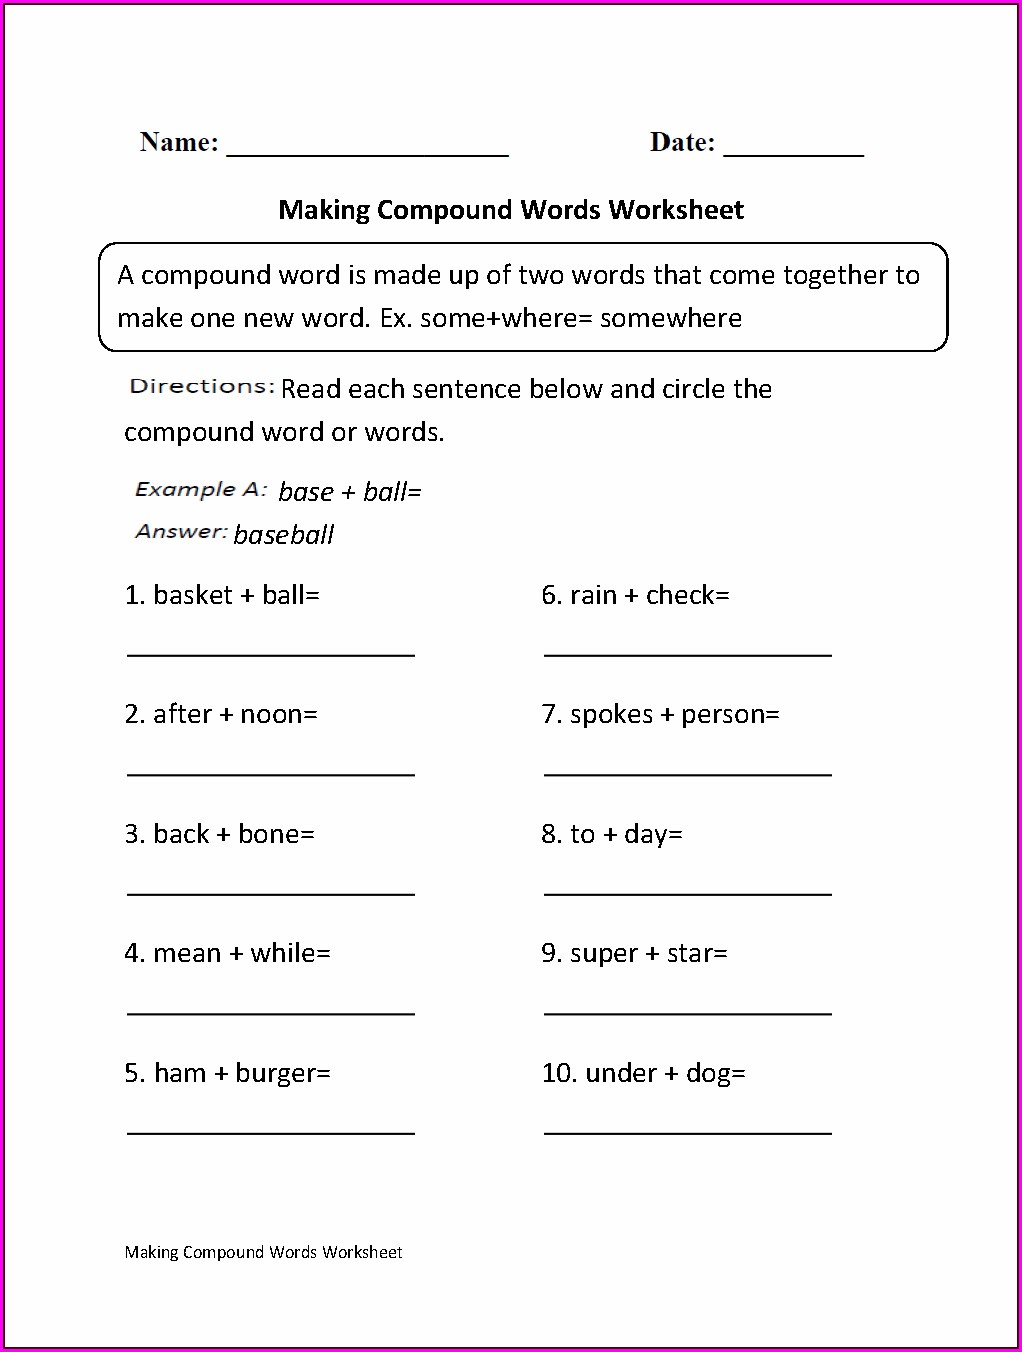 Compound Words Worksheet Grade 4 Pdf